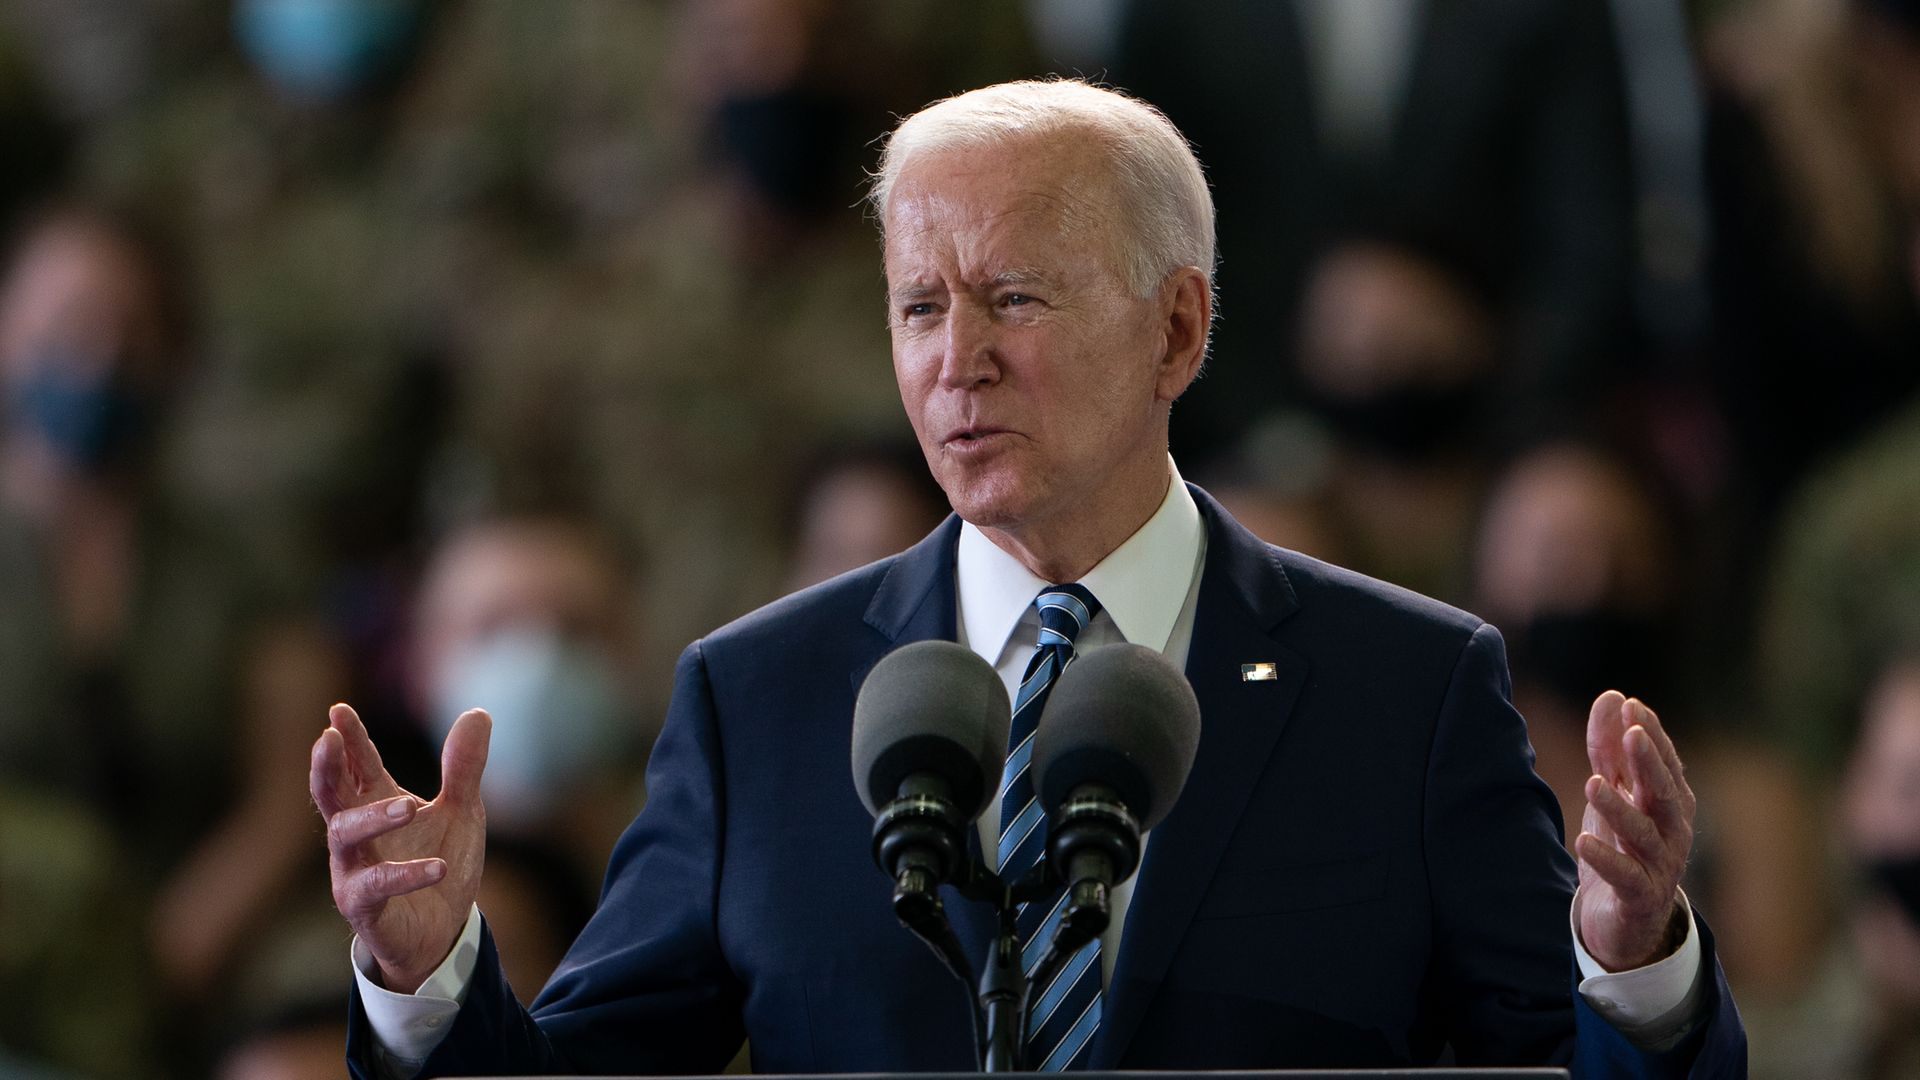 US President Joe Biden addresses US Air Force personnel at RAF Mildenhall in Suffolk, ahead of the G7 summit in Cornwall - Credit: PA